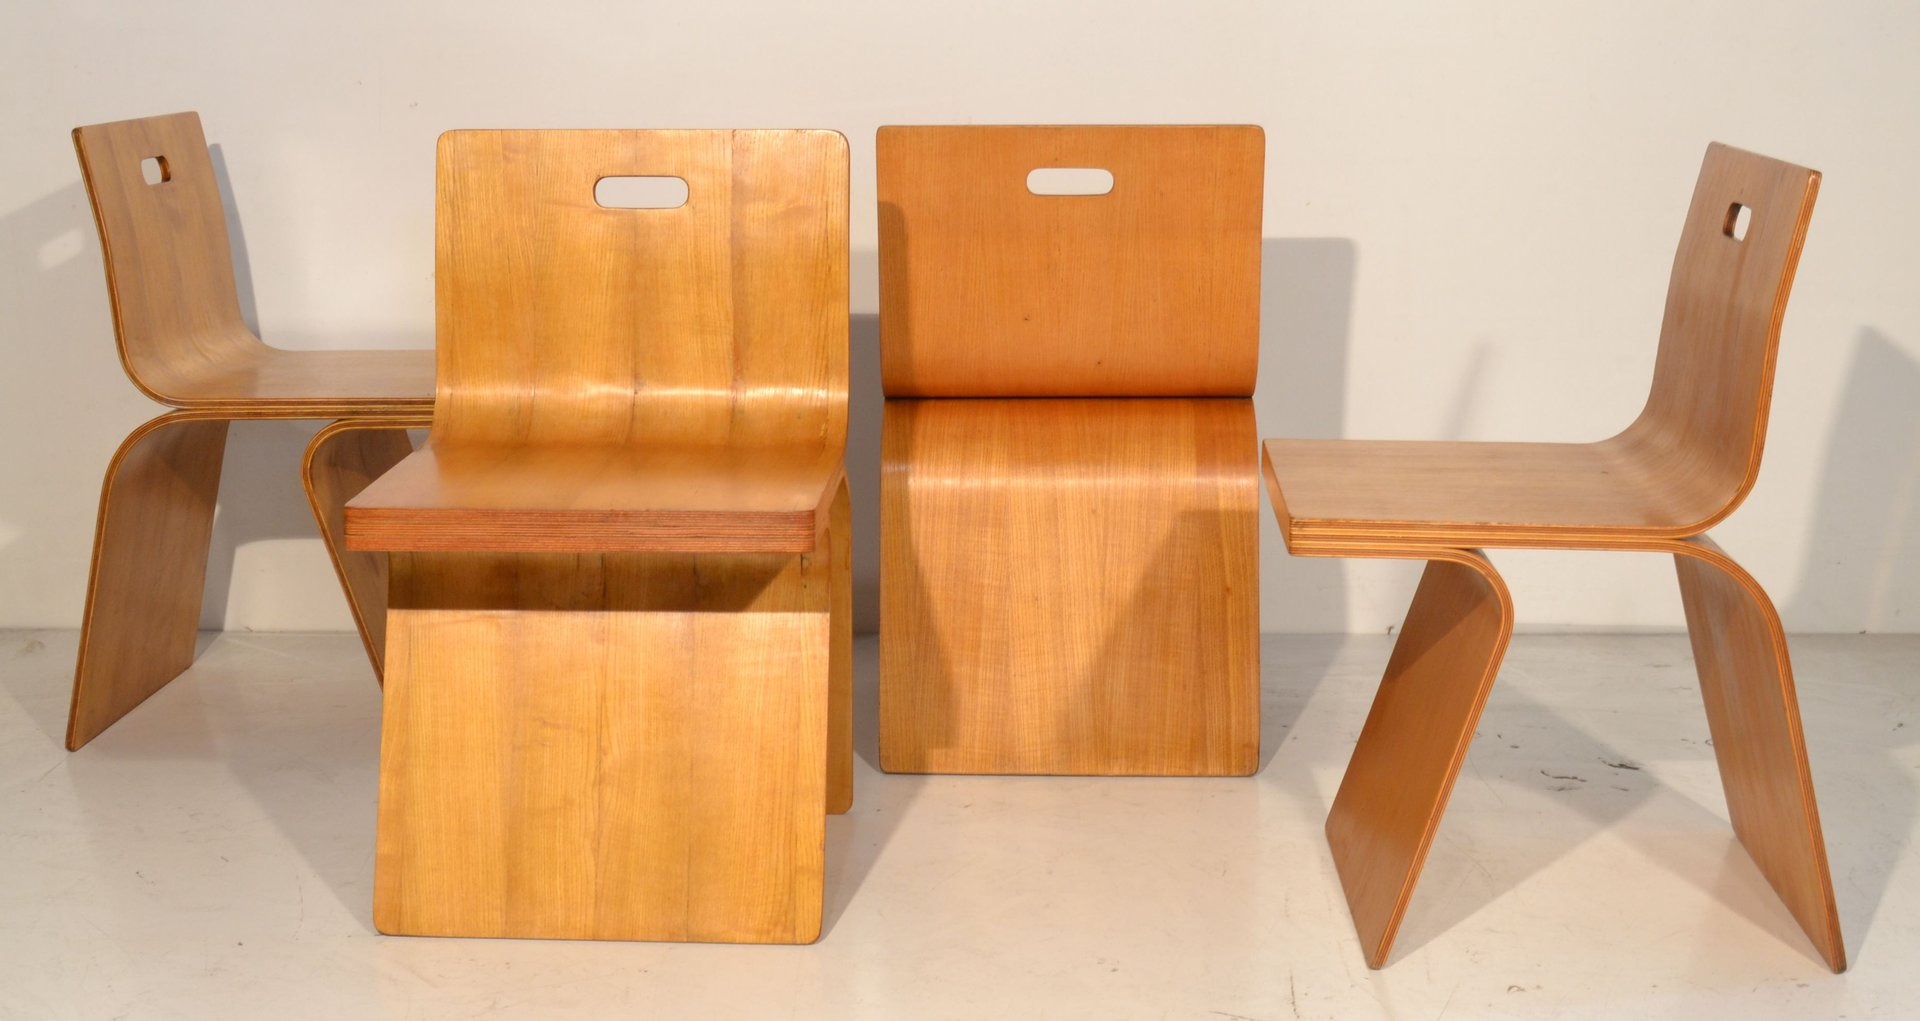 Bent Plywood Chair Italian Bent Plywood Chairs 1960s Set Of 4 For Sale At